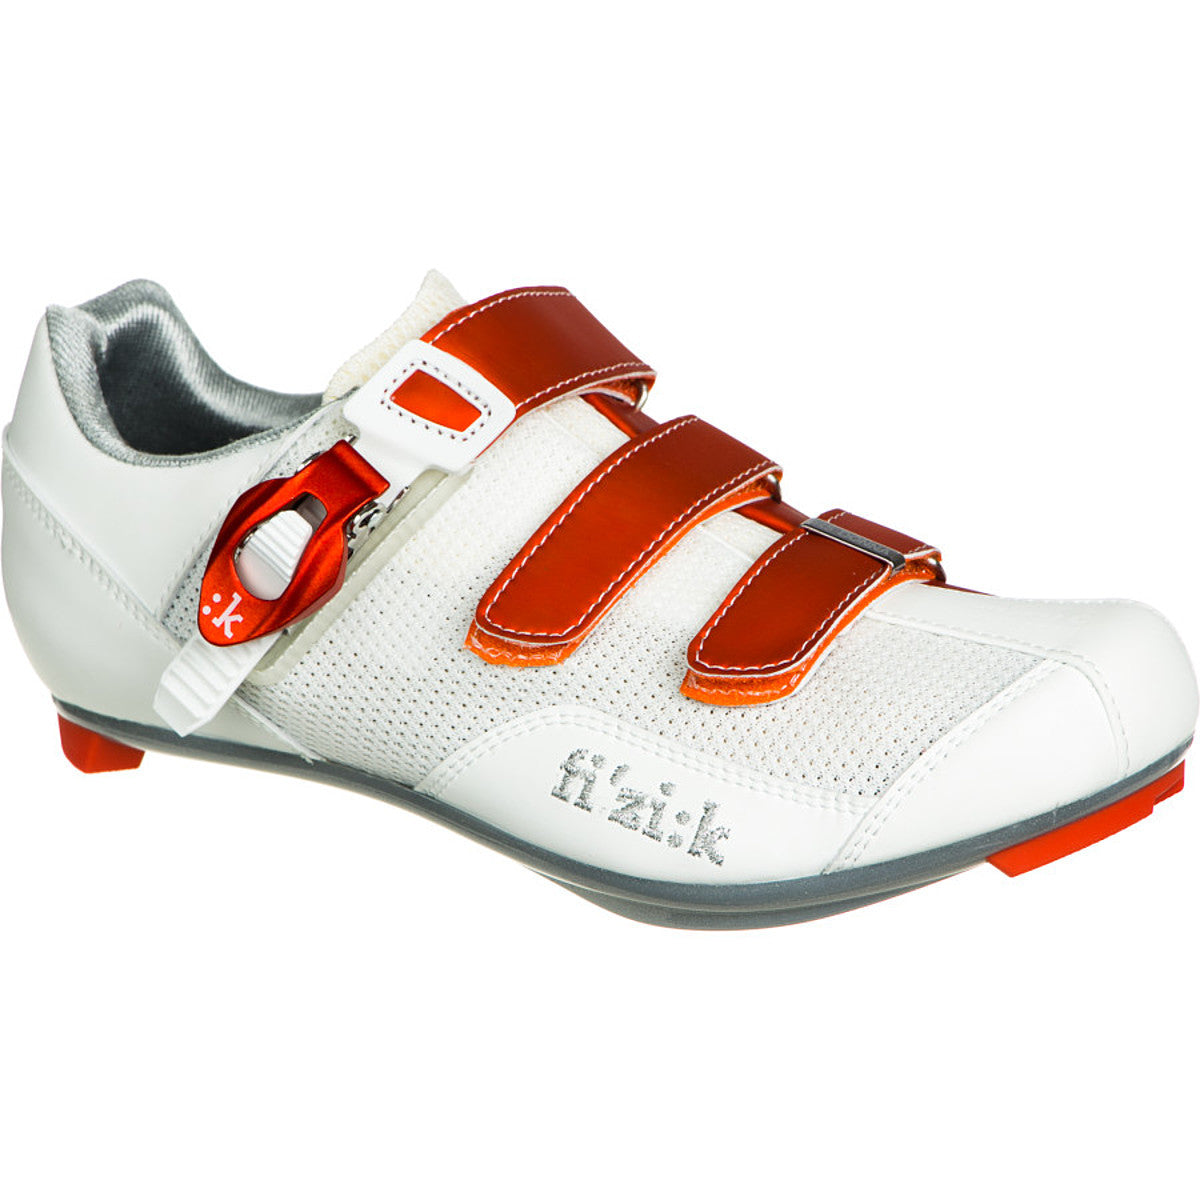 Fizik R5 Donna Road Shoes - Racer Sportif